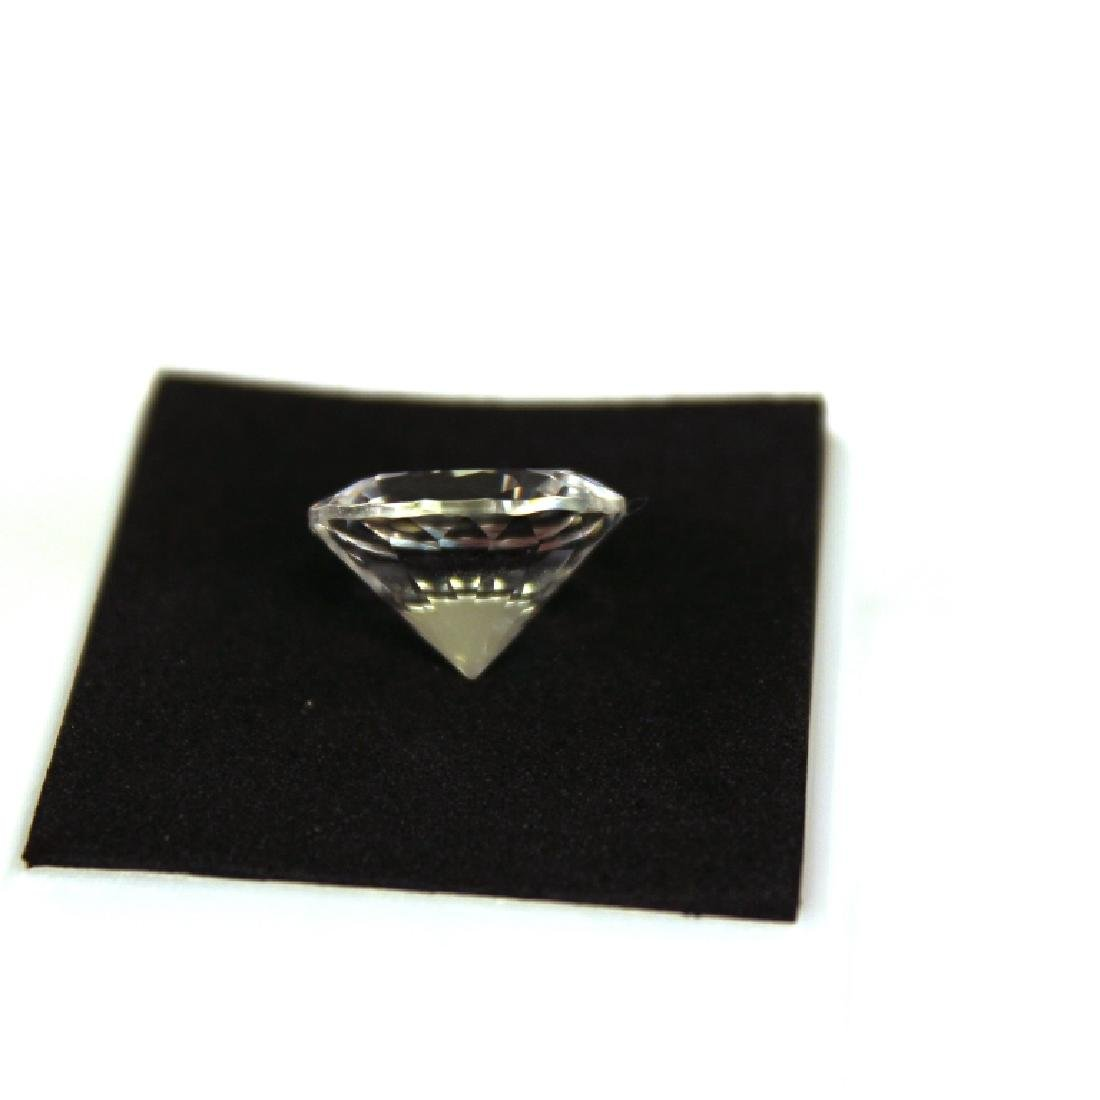 Approx 9.00 CT 14MM White Topaz Gemstone - 5